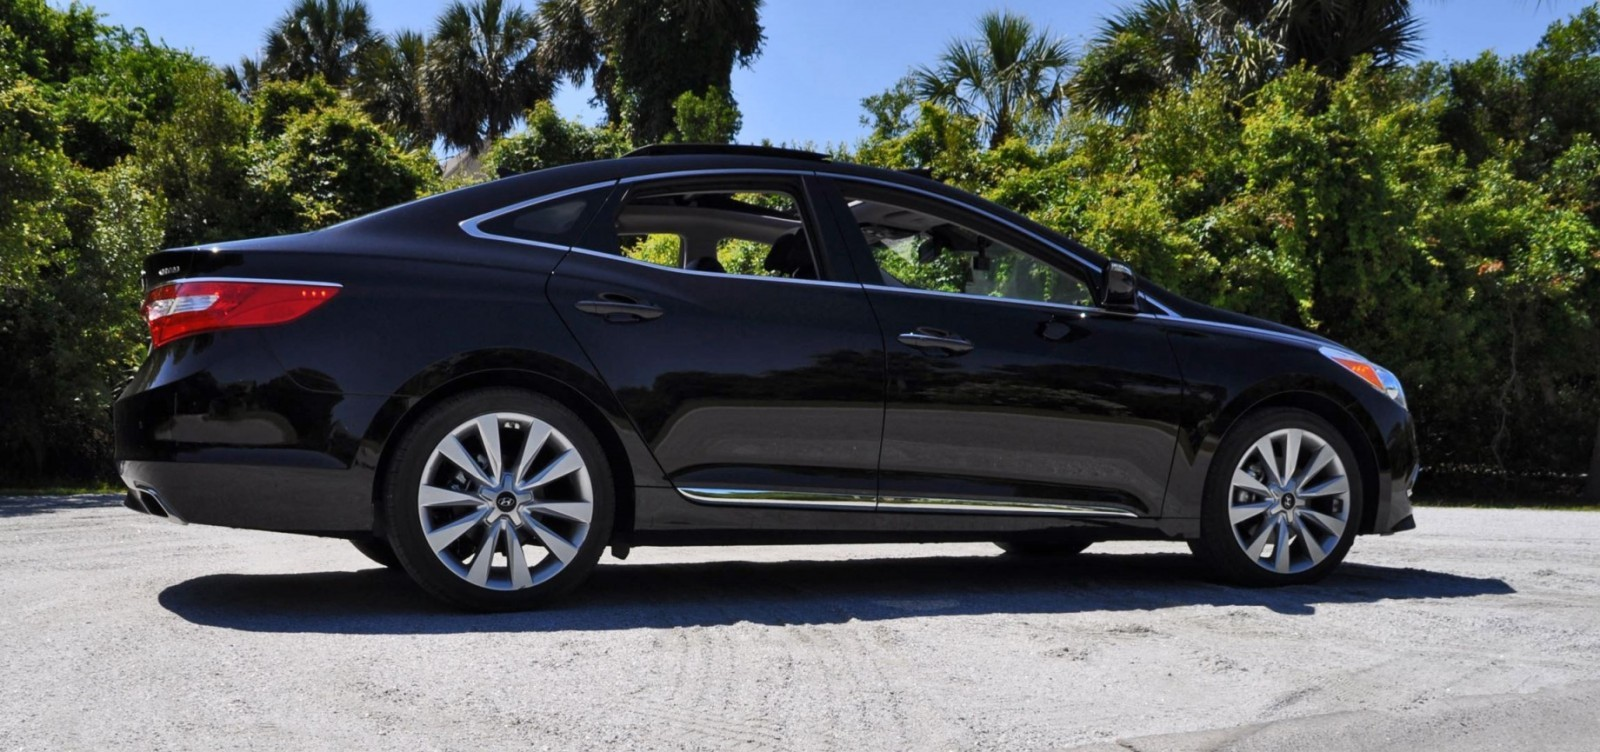 Road Test Review - 2015 Hyundai AZERA Limited 122